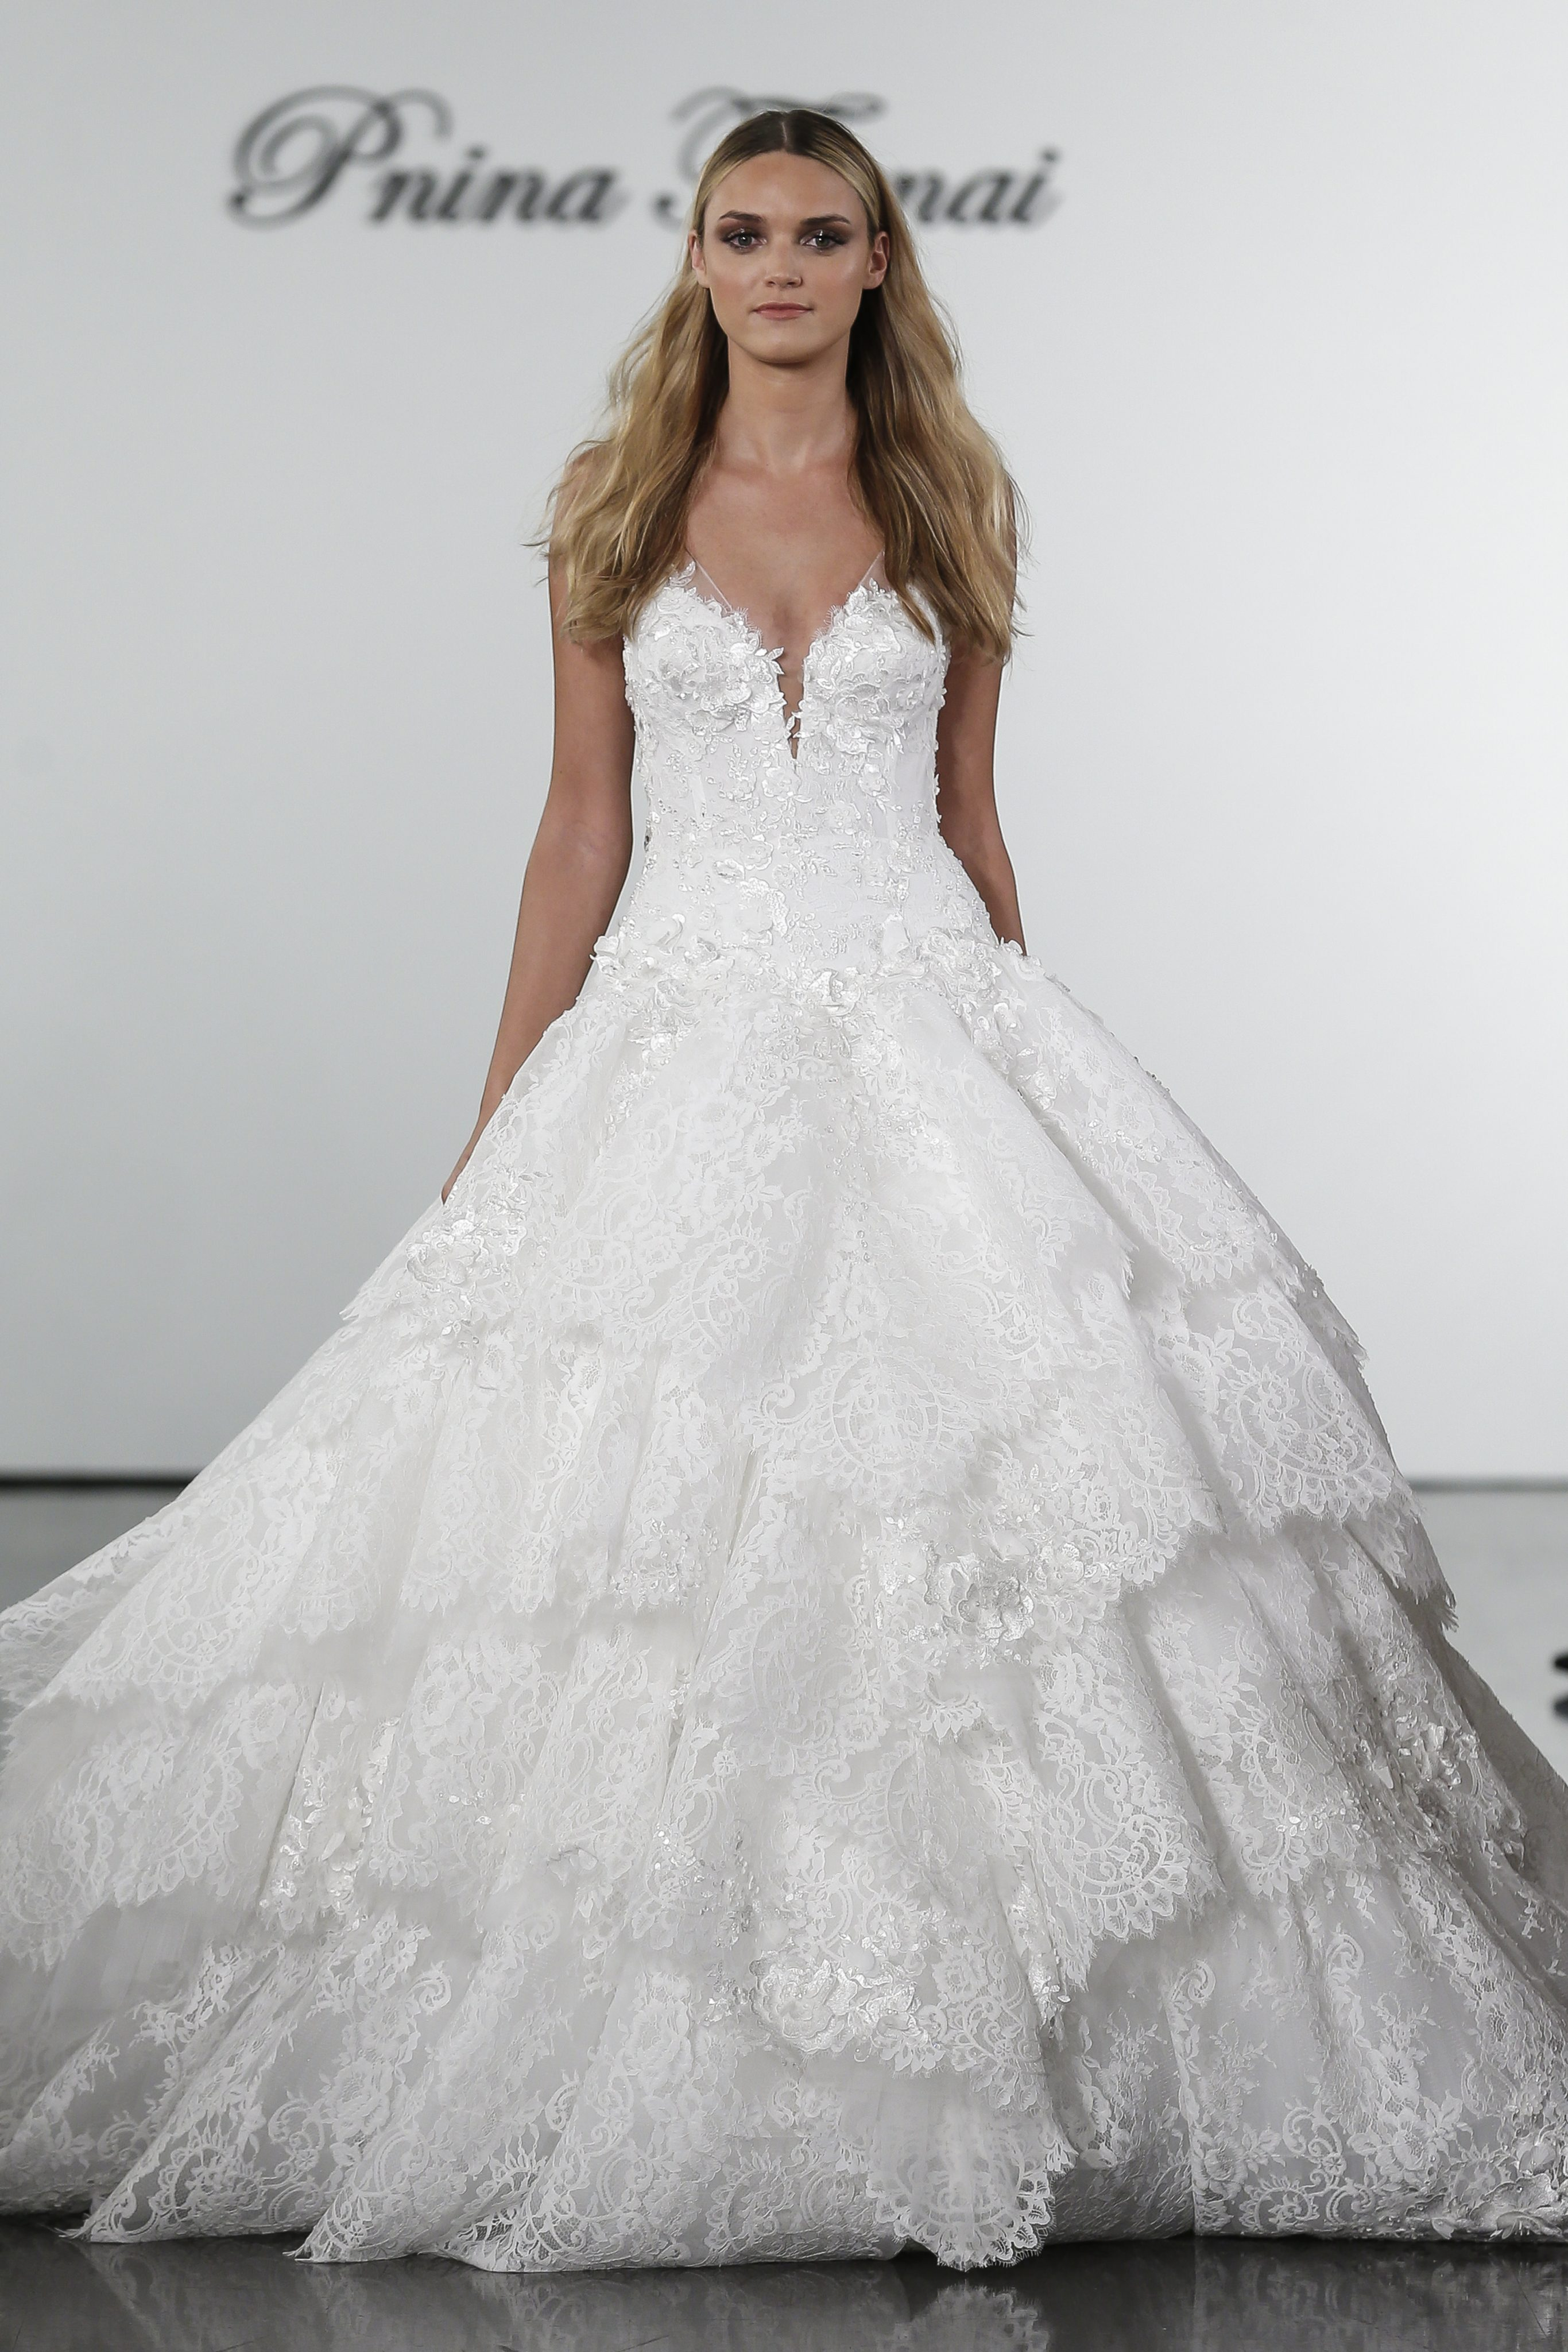 V Neck Lace Ball Gown Wedding Dress With Floral Appliqued